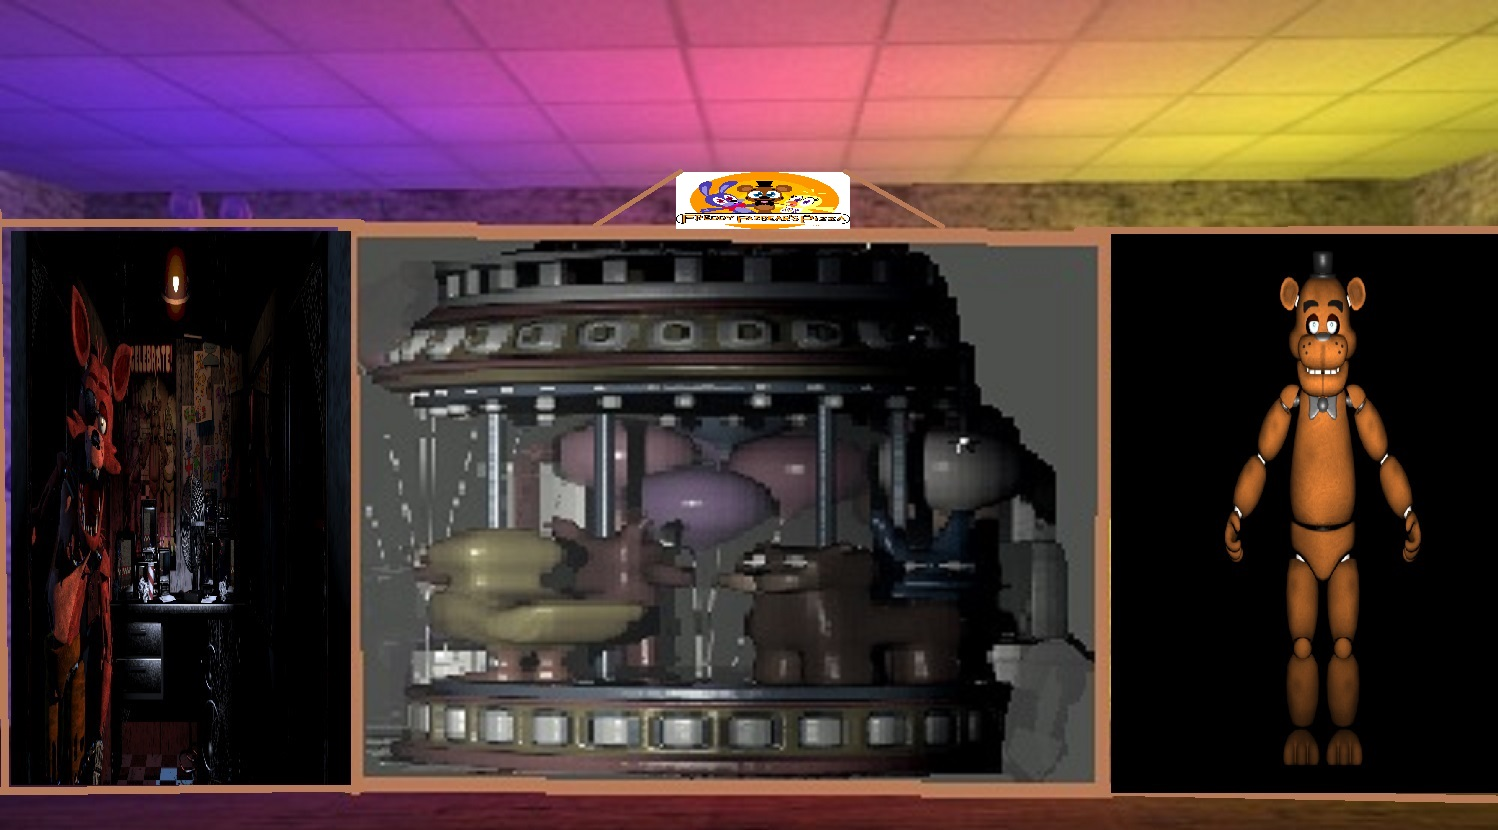 Unknown Abandoned Diner The Fnaf Fanon Wiki Fandom Powered By Wikia Johnny Five Tumblr Nb16gjchcz1tek46oo5 R1 500